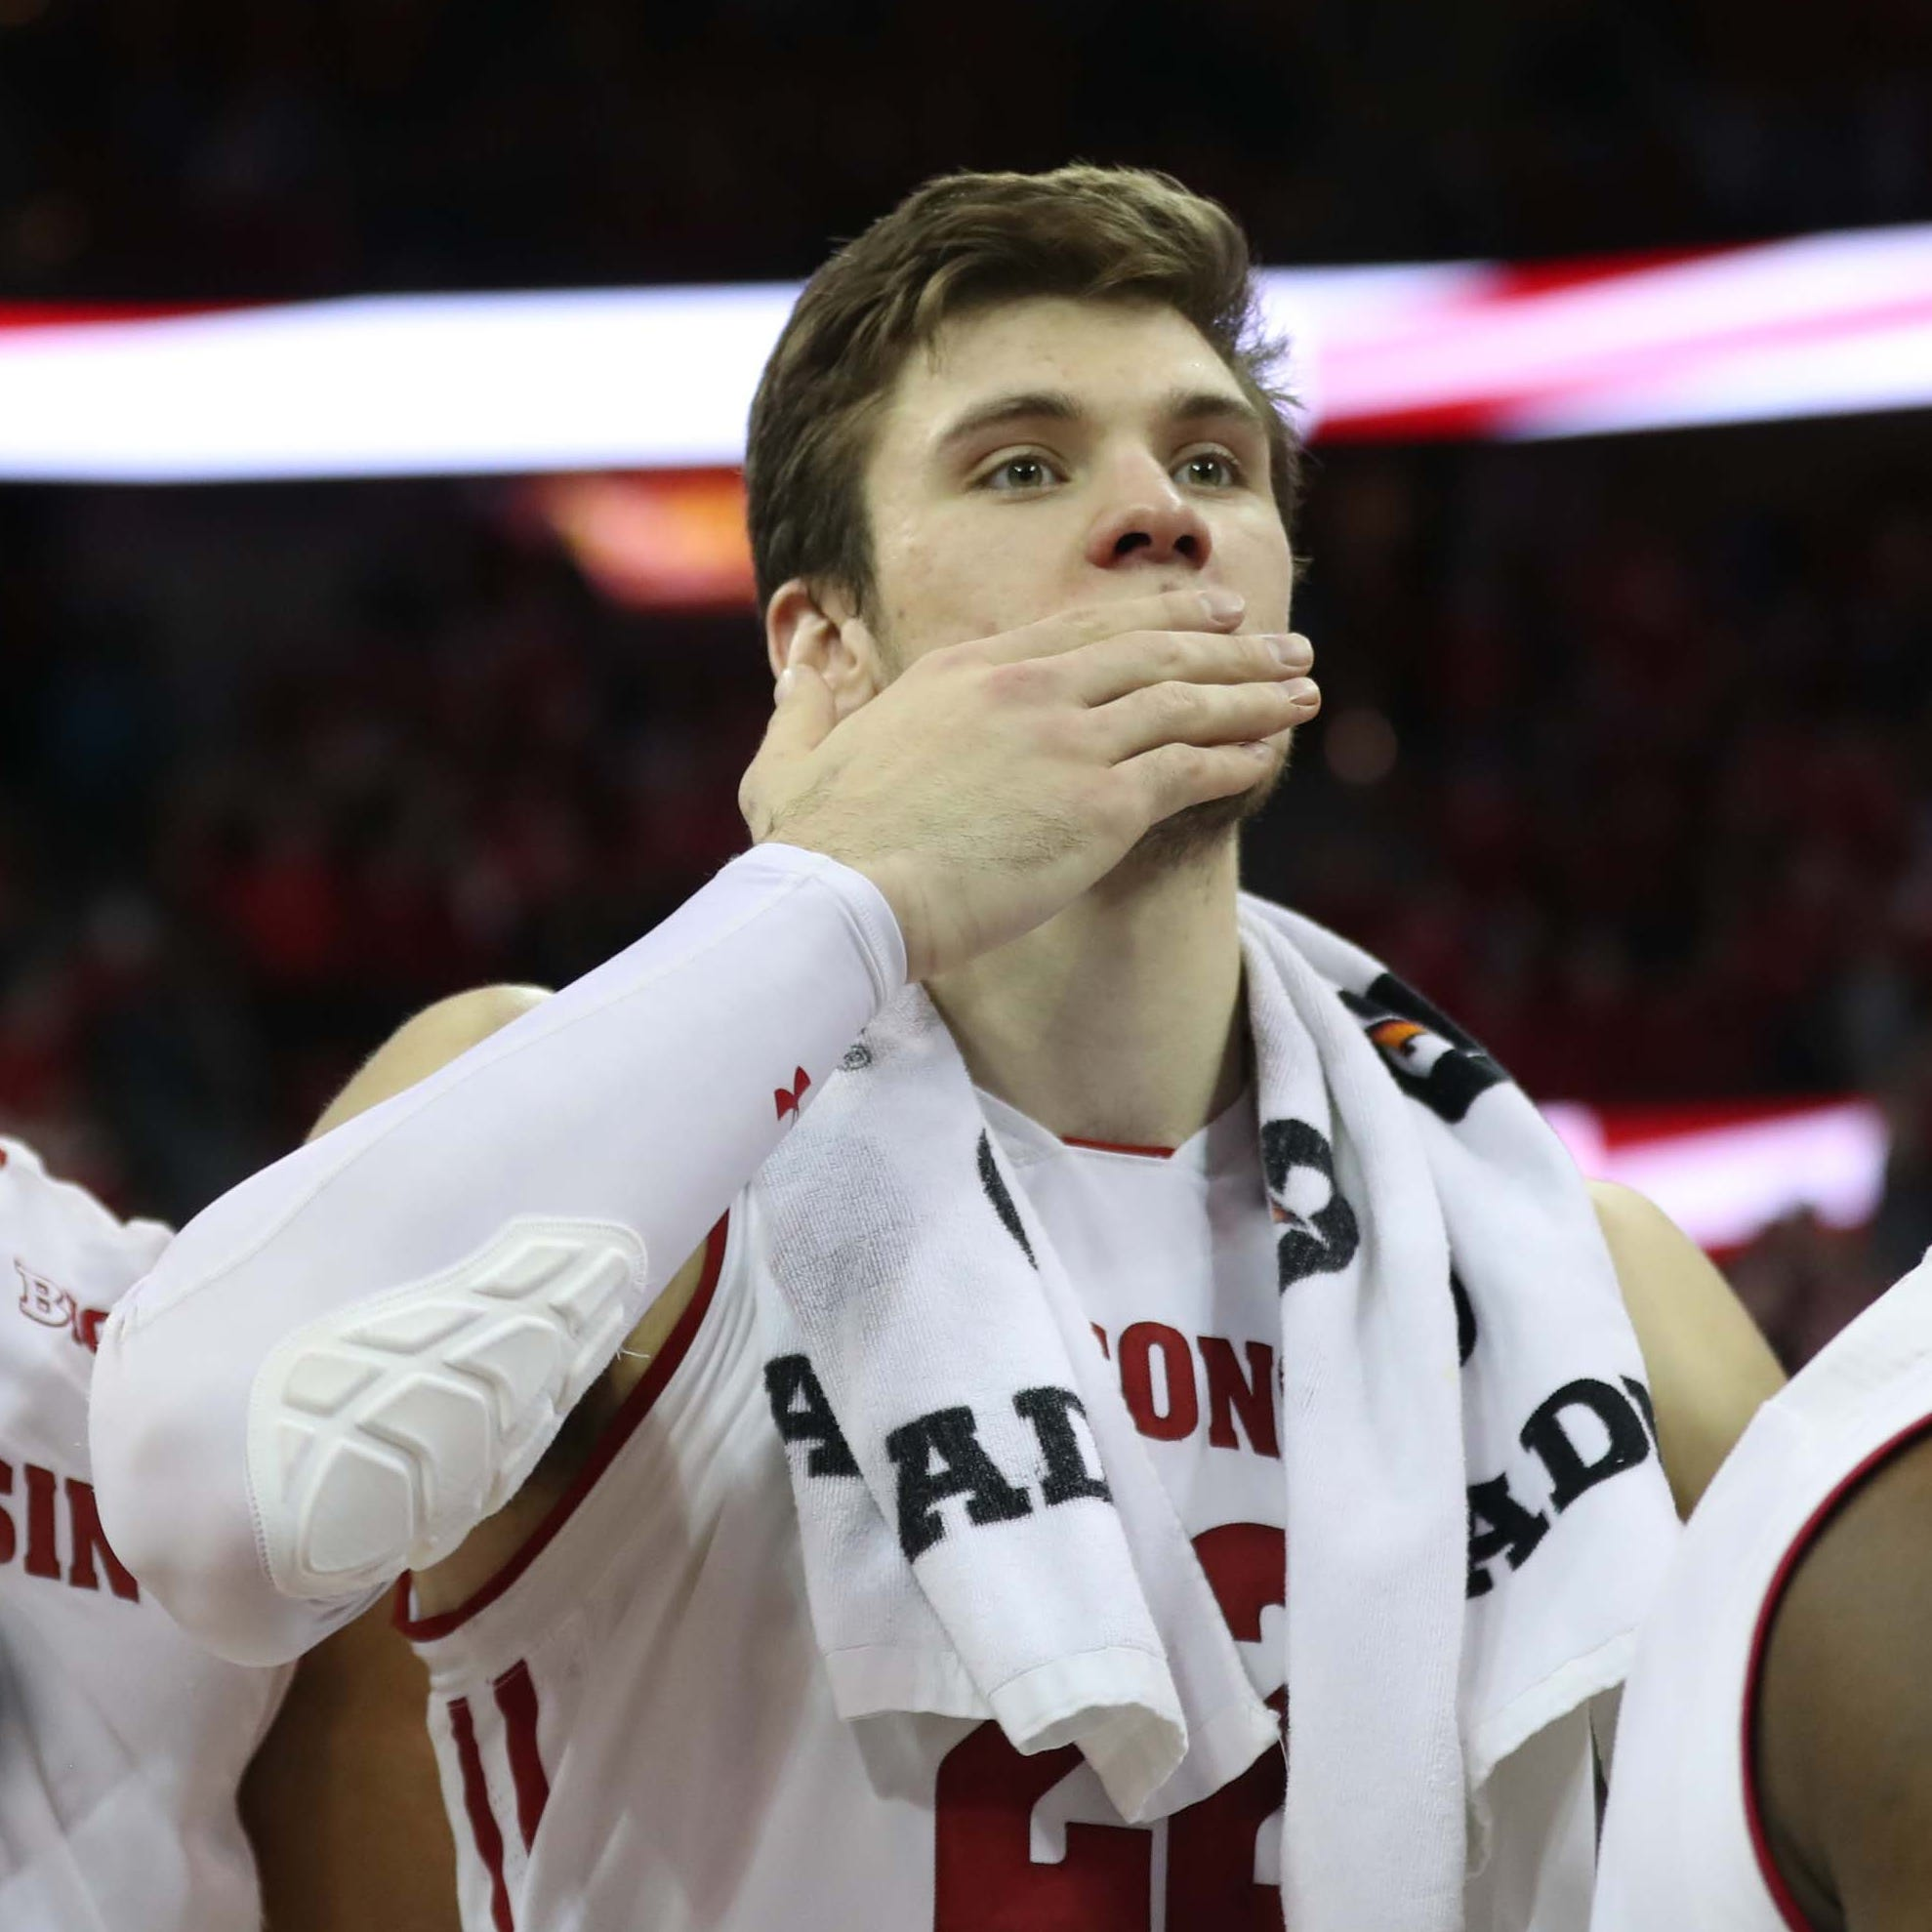 Ethan Happ will leave Wisconsin after the NCAA Tournament as one of the Badgers' greatest players